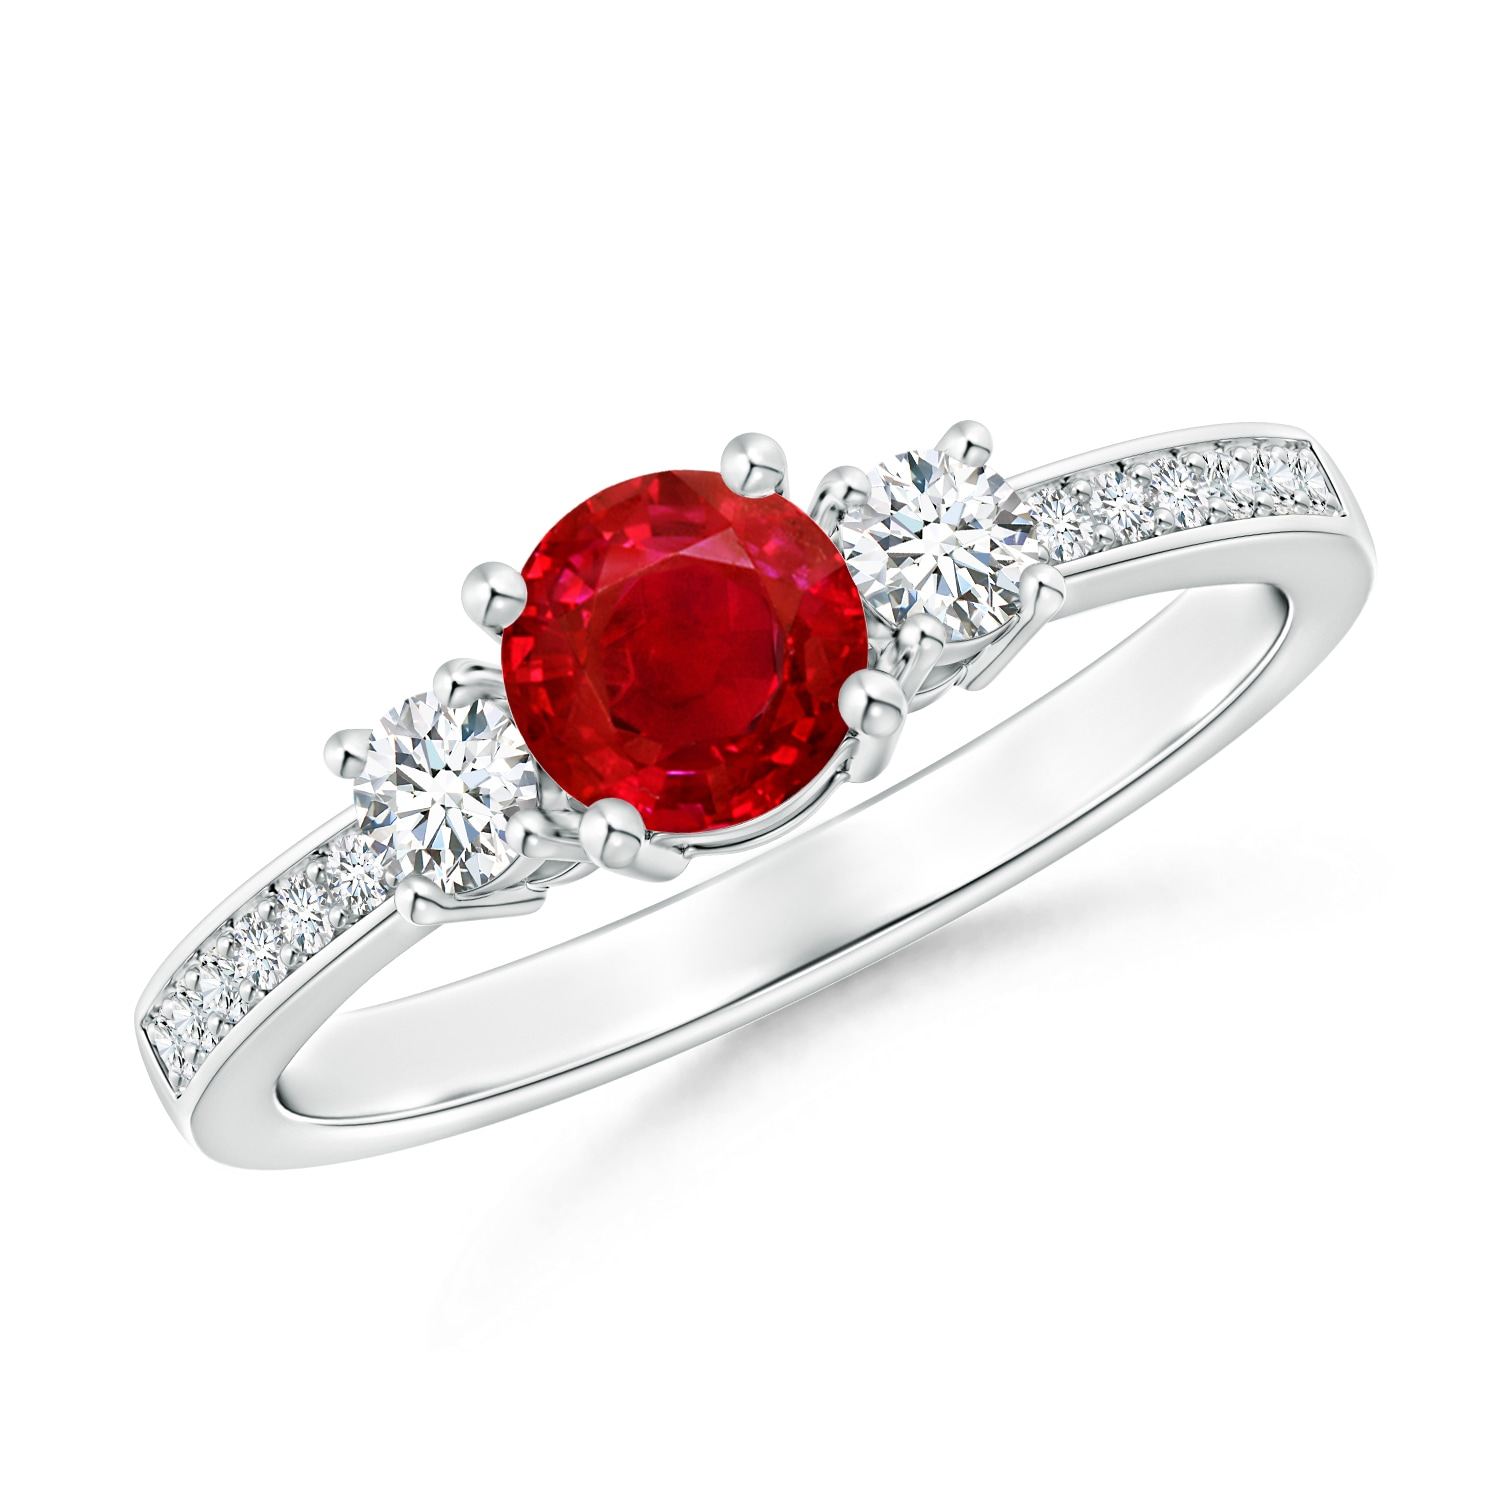 Angara Womens Ruby Ring in 14k White Gold IgzDfTF